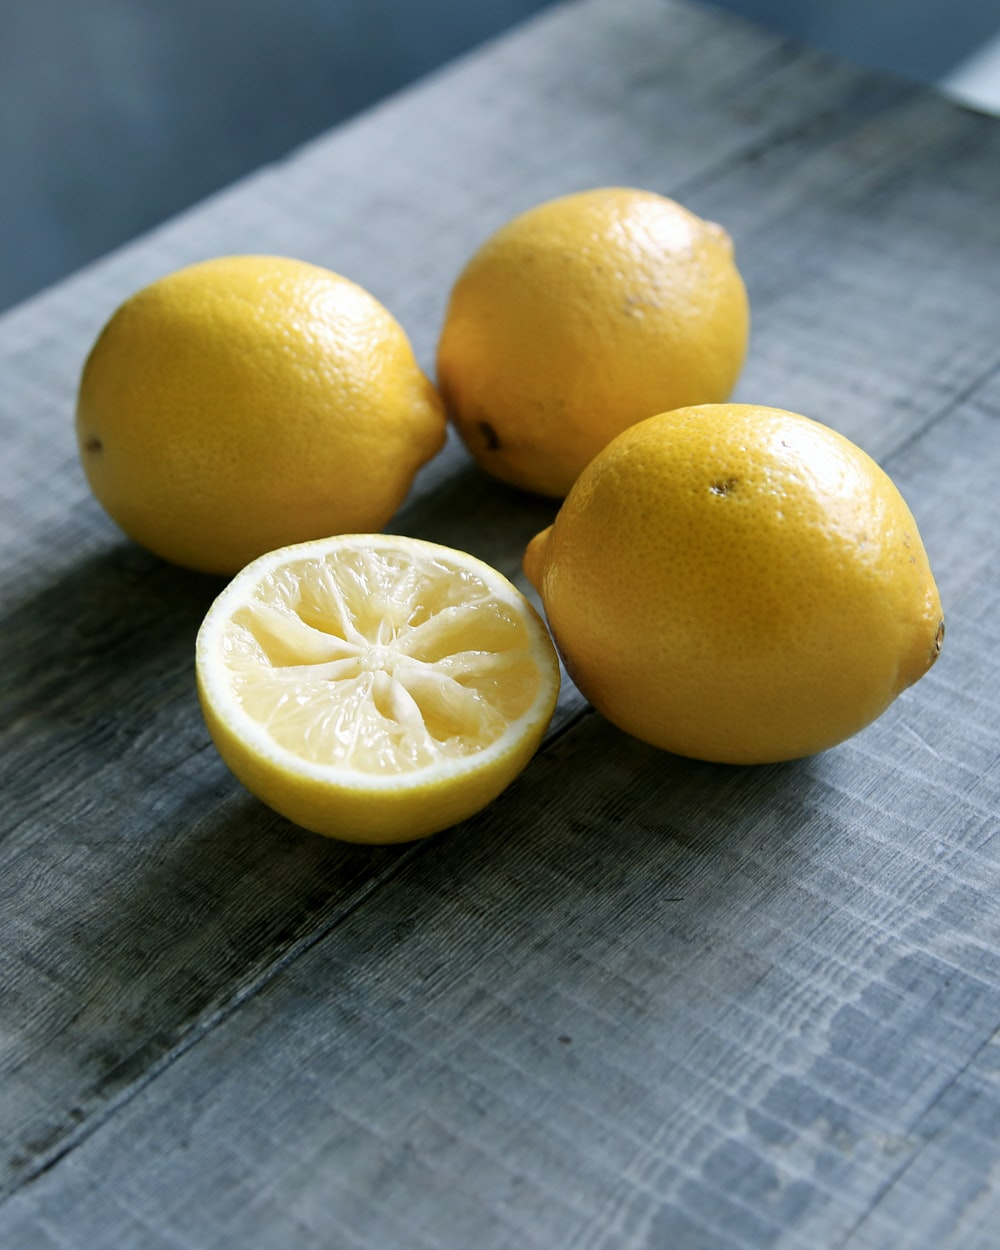 three yellow lemons beside sliced lemon placed on gray wooden surface